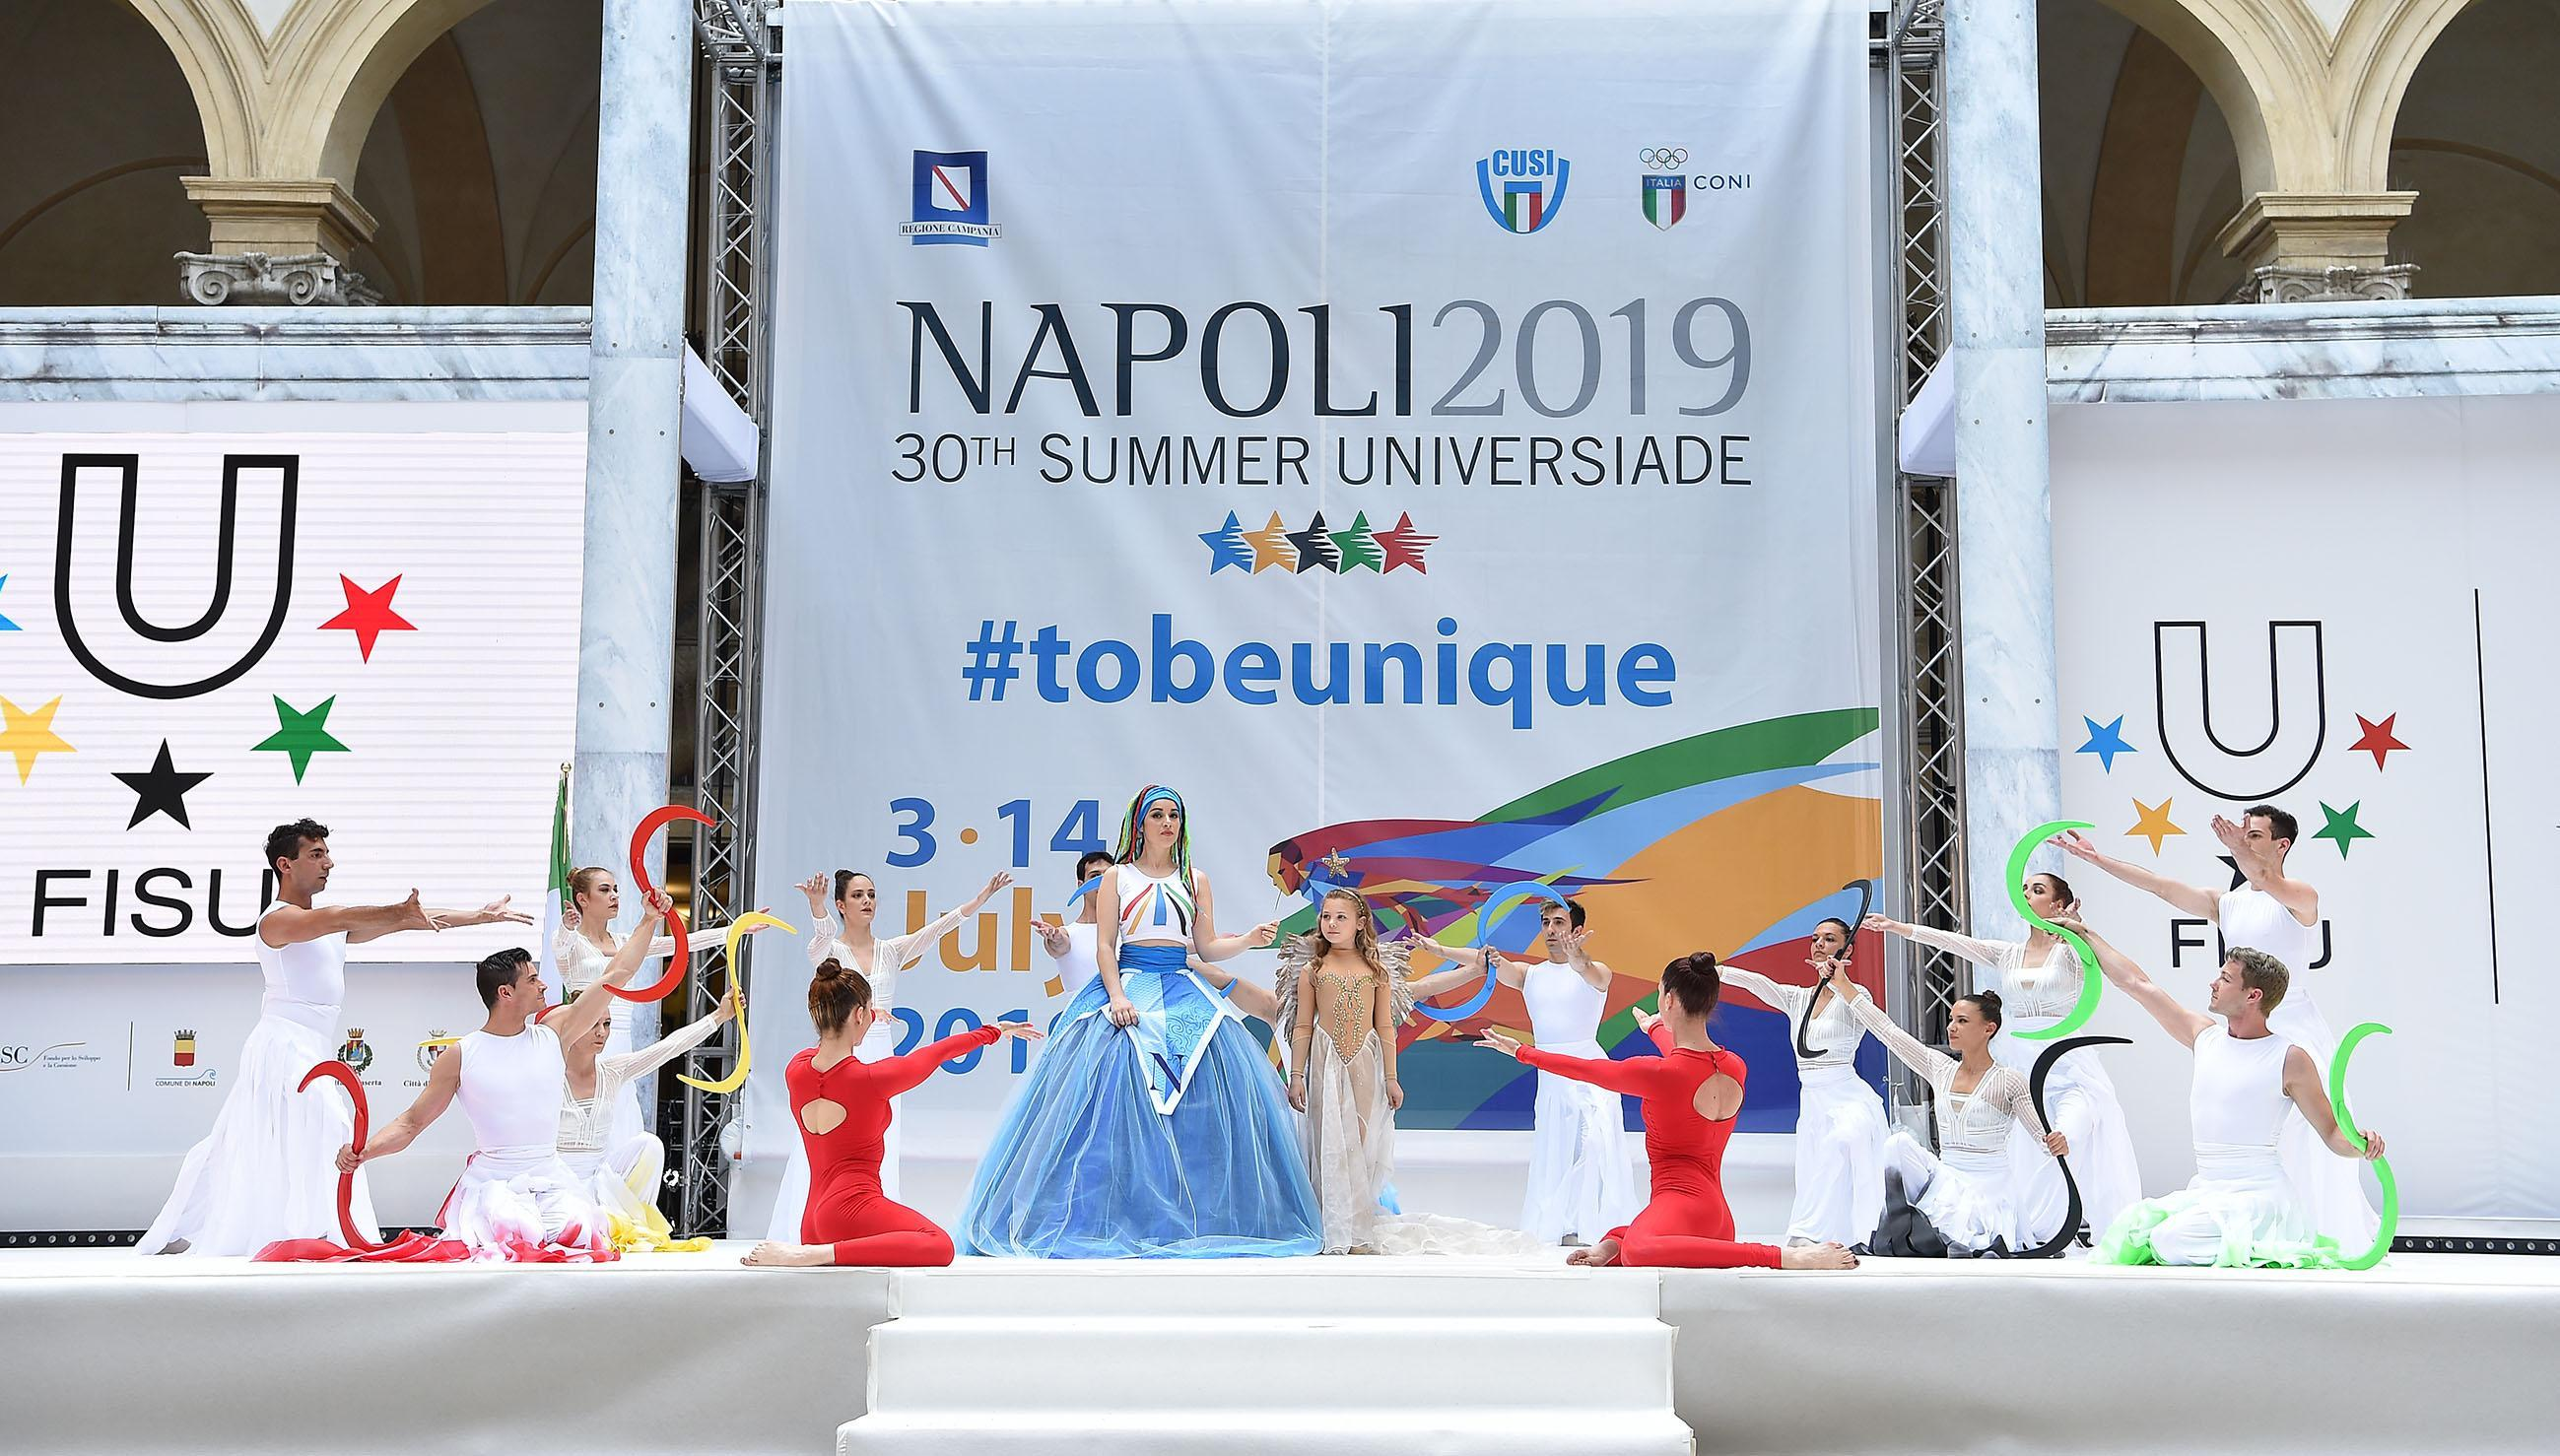 Lightening of Napoli 2019 Torch